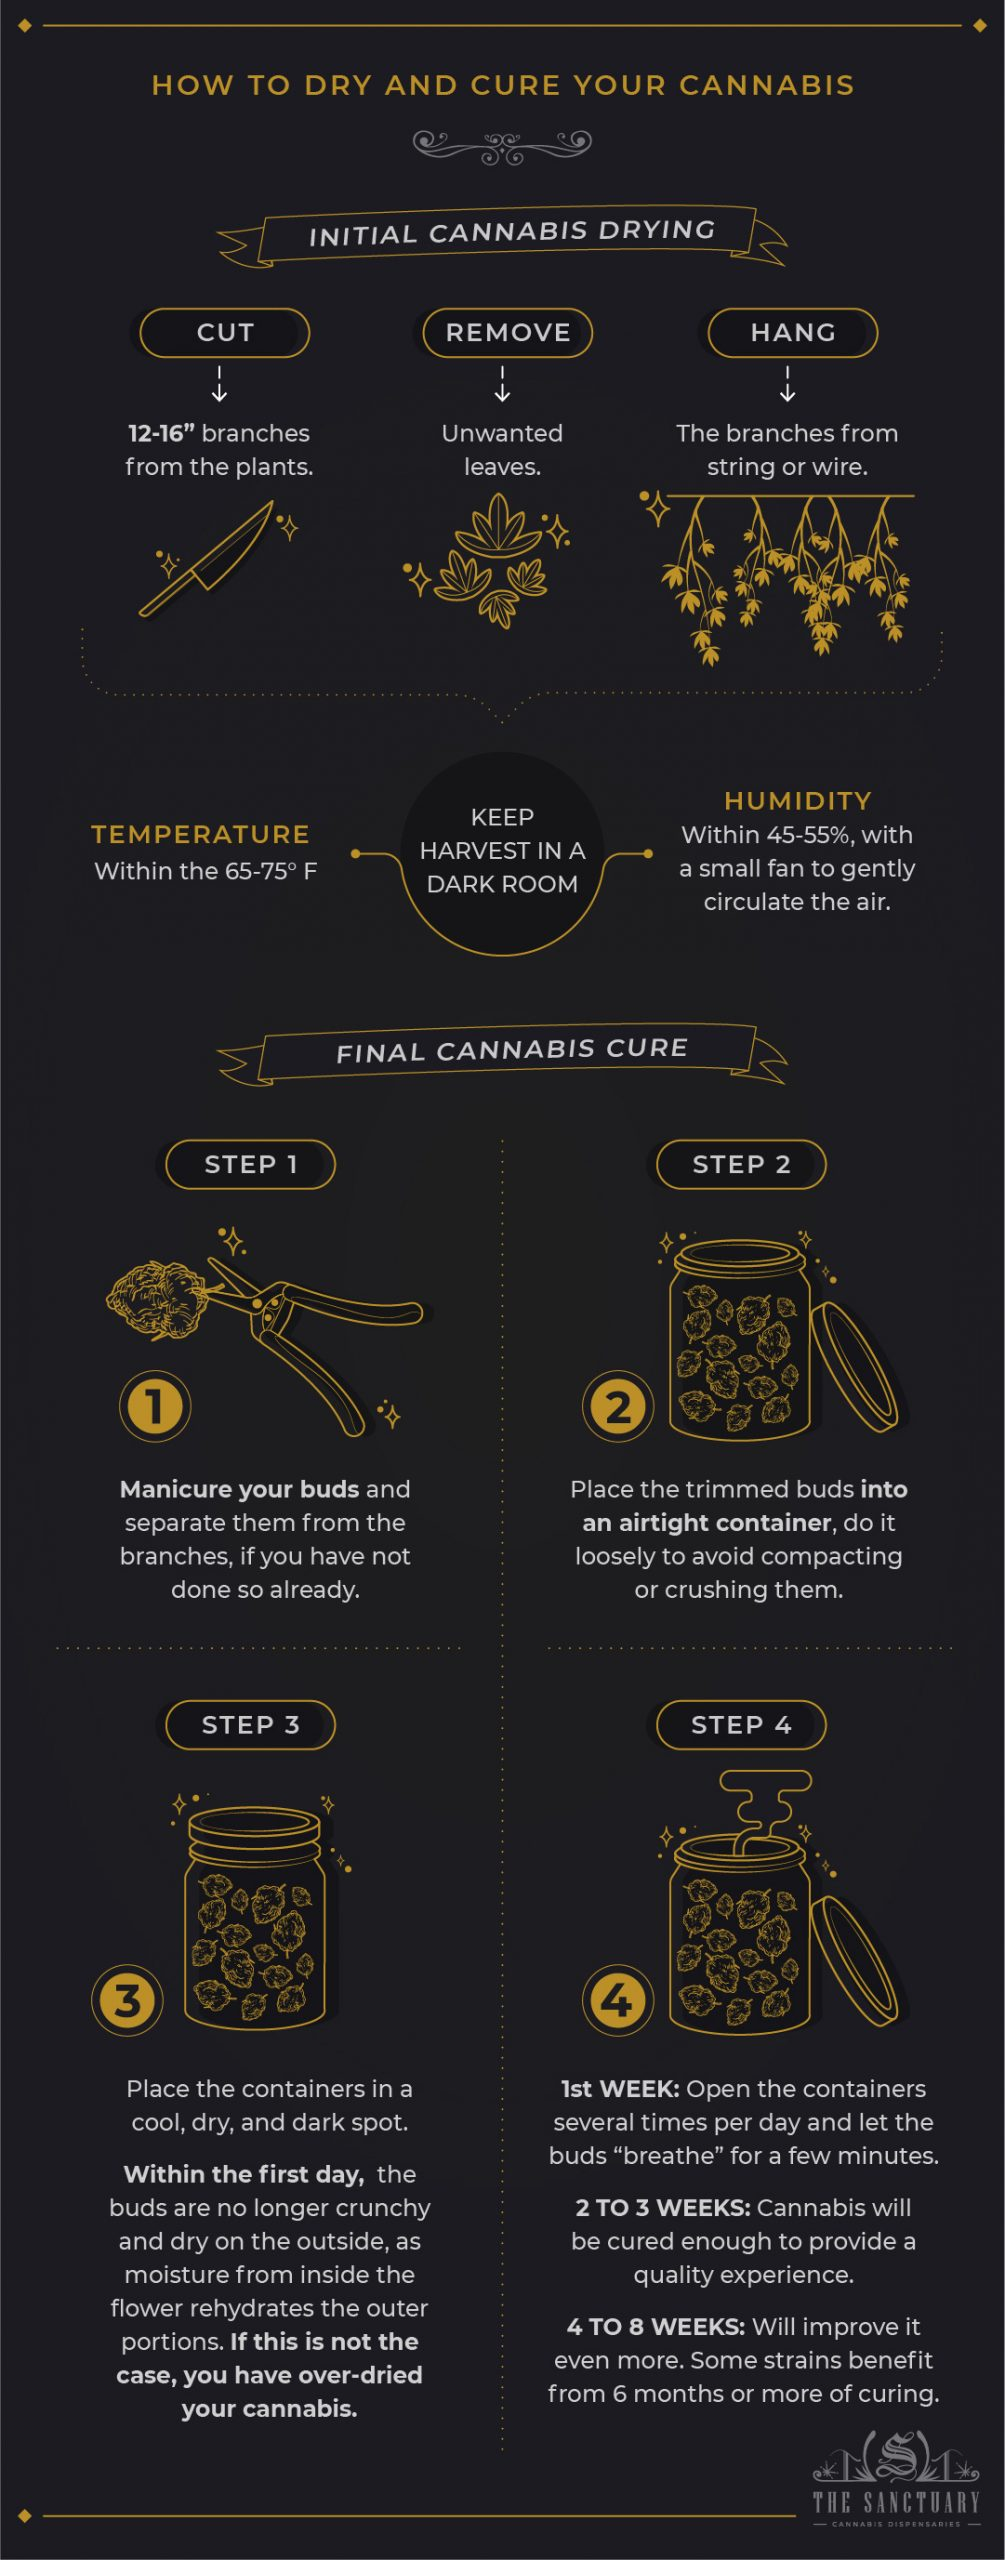 How to dry and cure your cannabis